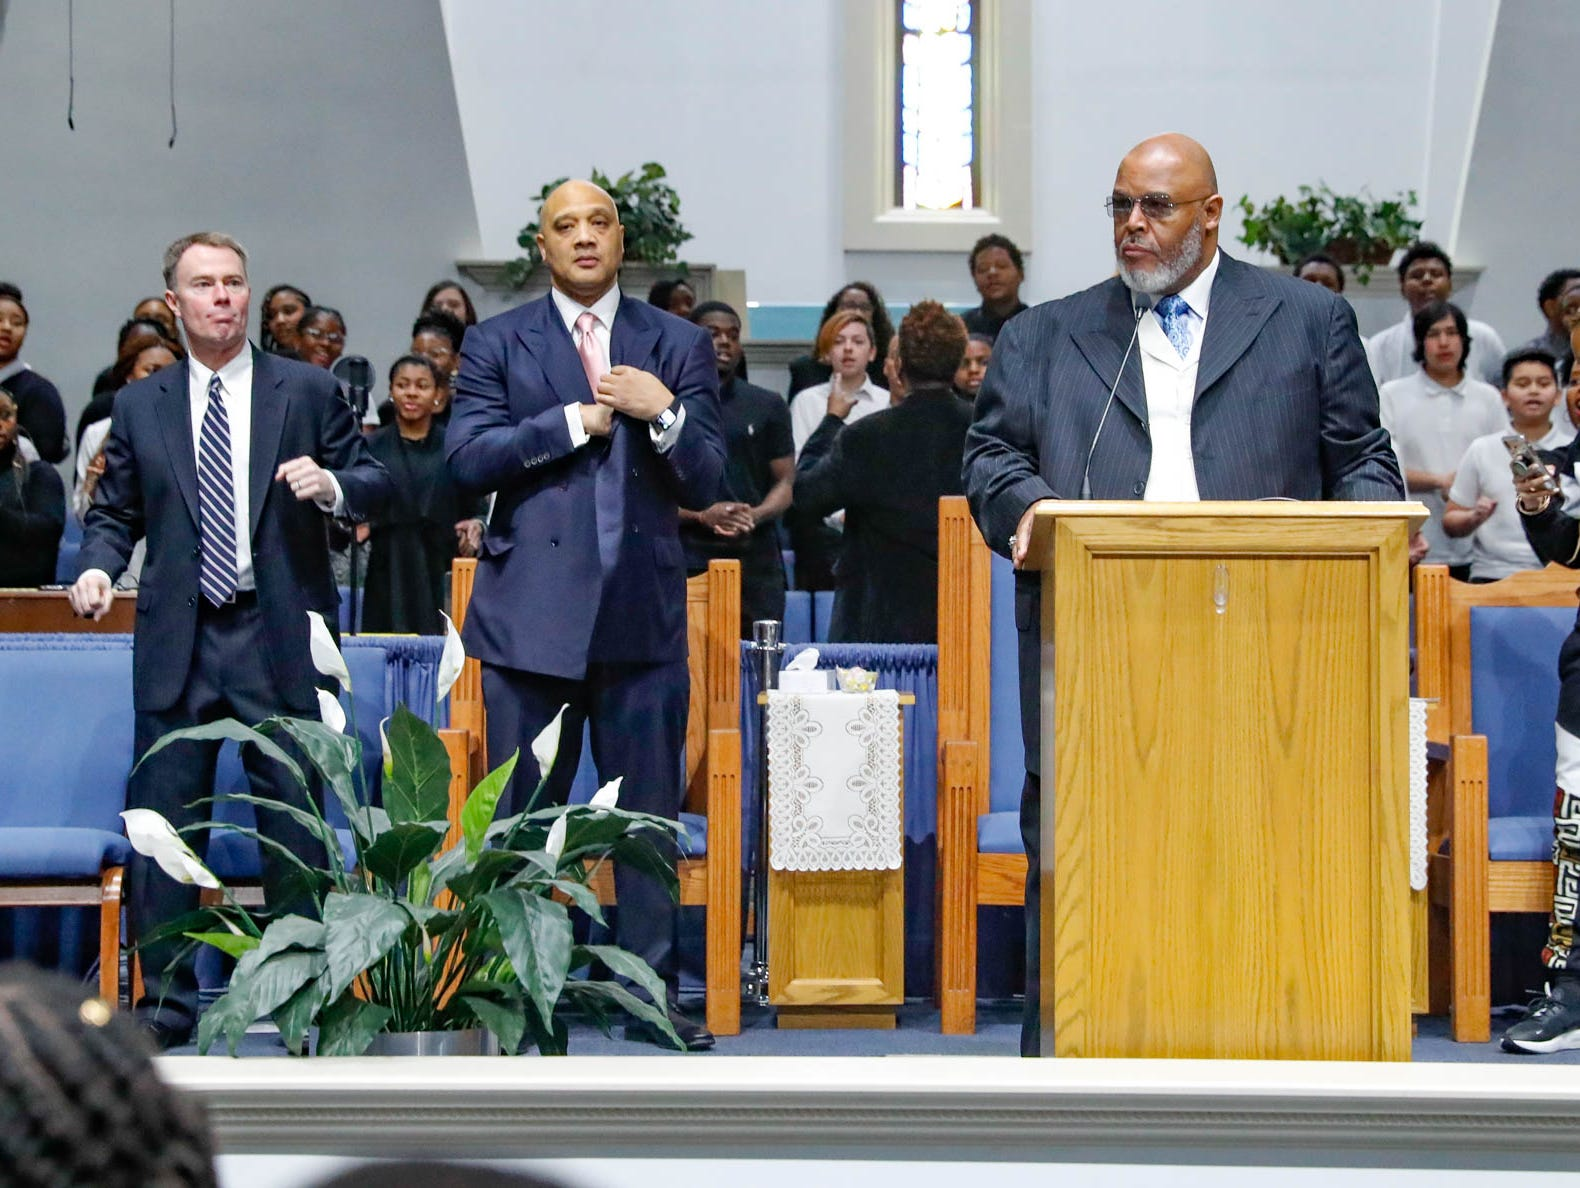 """Rev. Dr. Wayne Moore greets guests during the annual Steward Speakers Lecture Series event, held at Olivet Missionary Baptist Church in Indianapolis on Thursday, Feb. 21, 2019. This years theme was """"Year of the woman"""". Left, Indianapolis Mayor Joe Hogsett, center left, U.S. Representative AndrŽ Carson."""